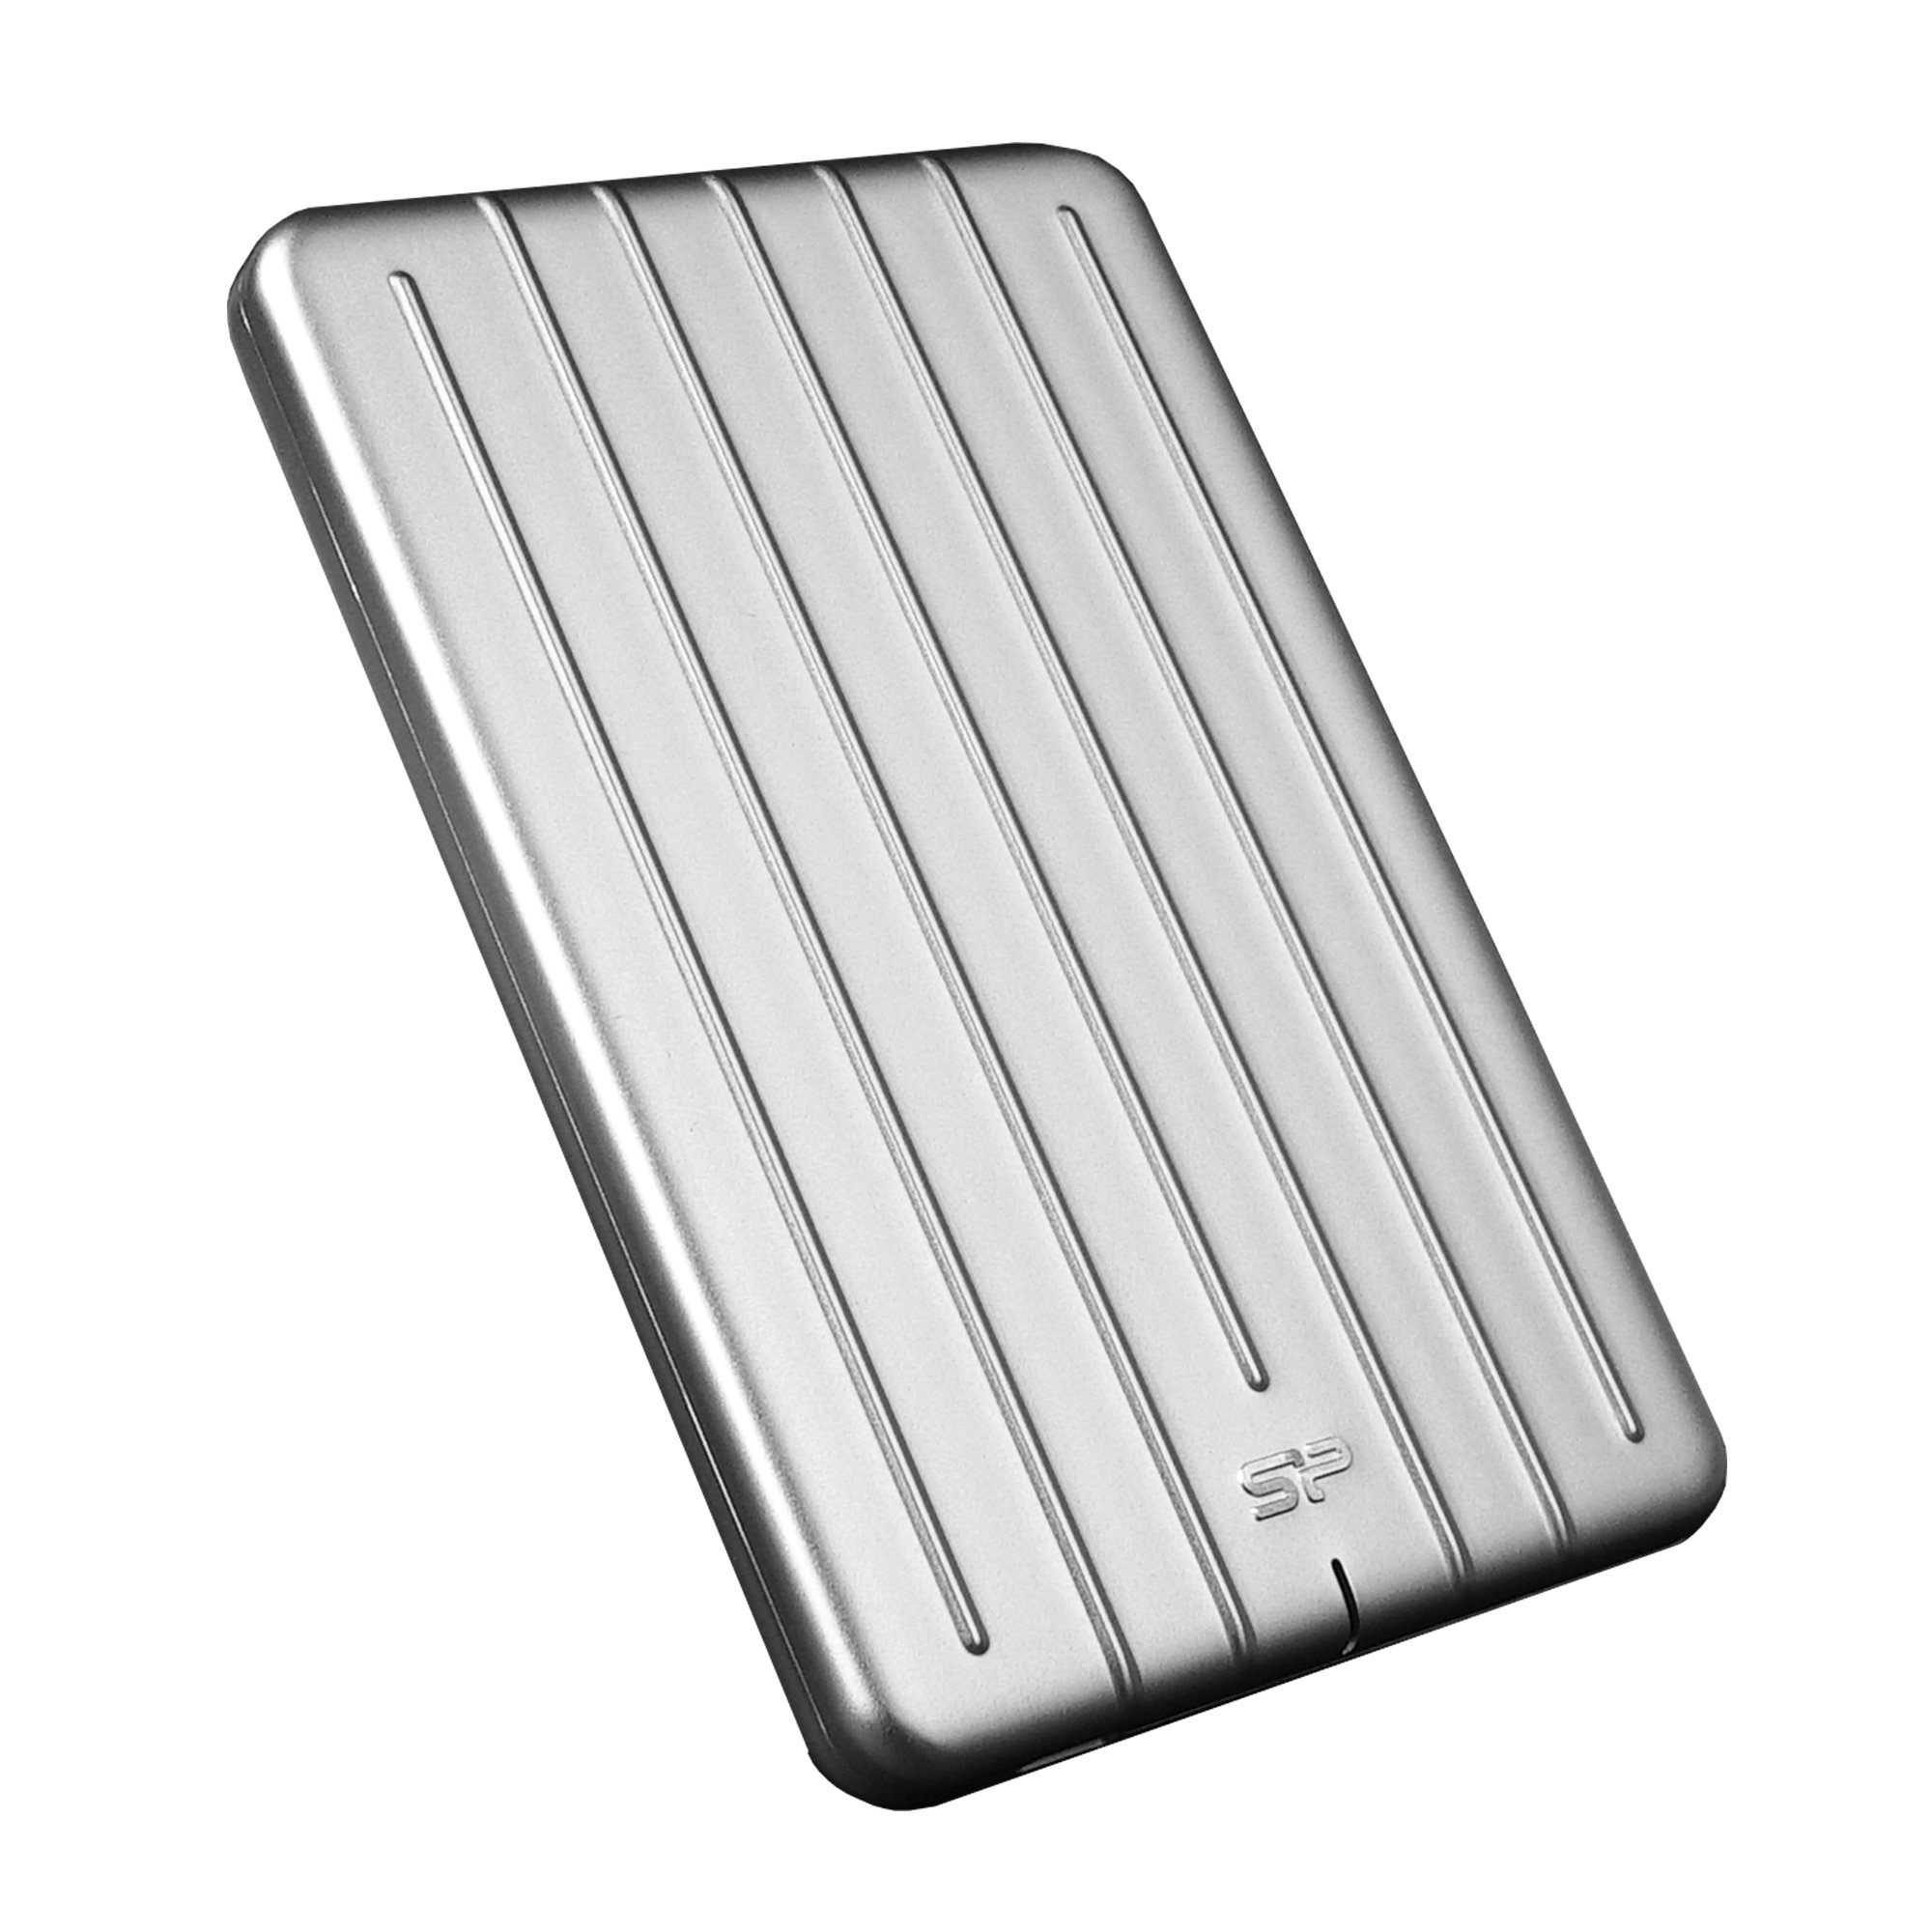 Silicon Power Bolt B75 120GB Type-C External Solid State Drive by SP Silicon Power (Image #1)